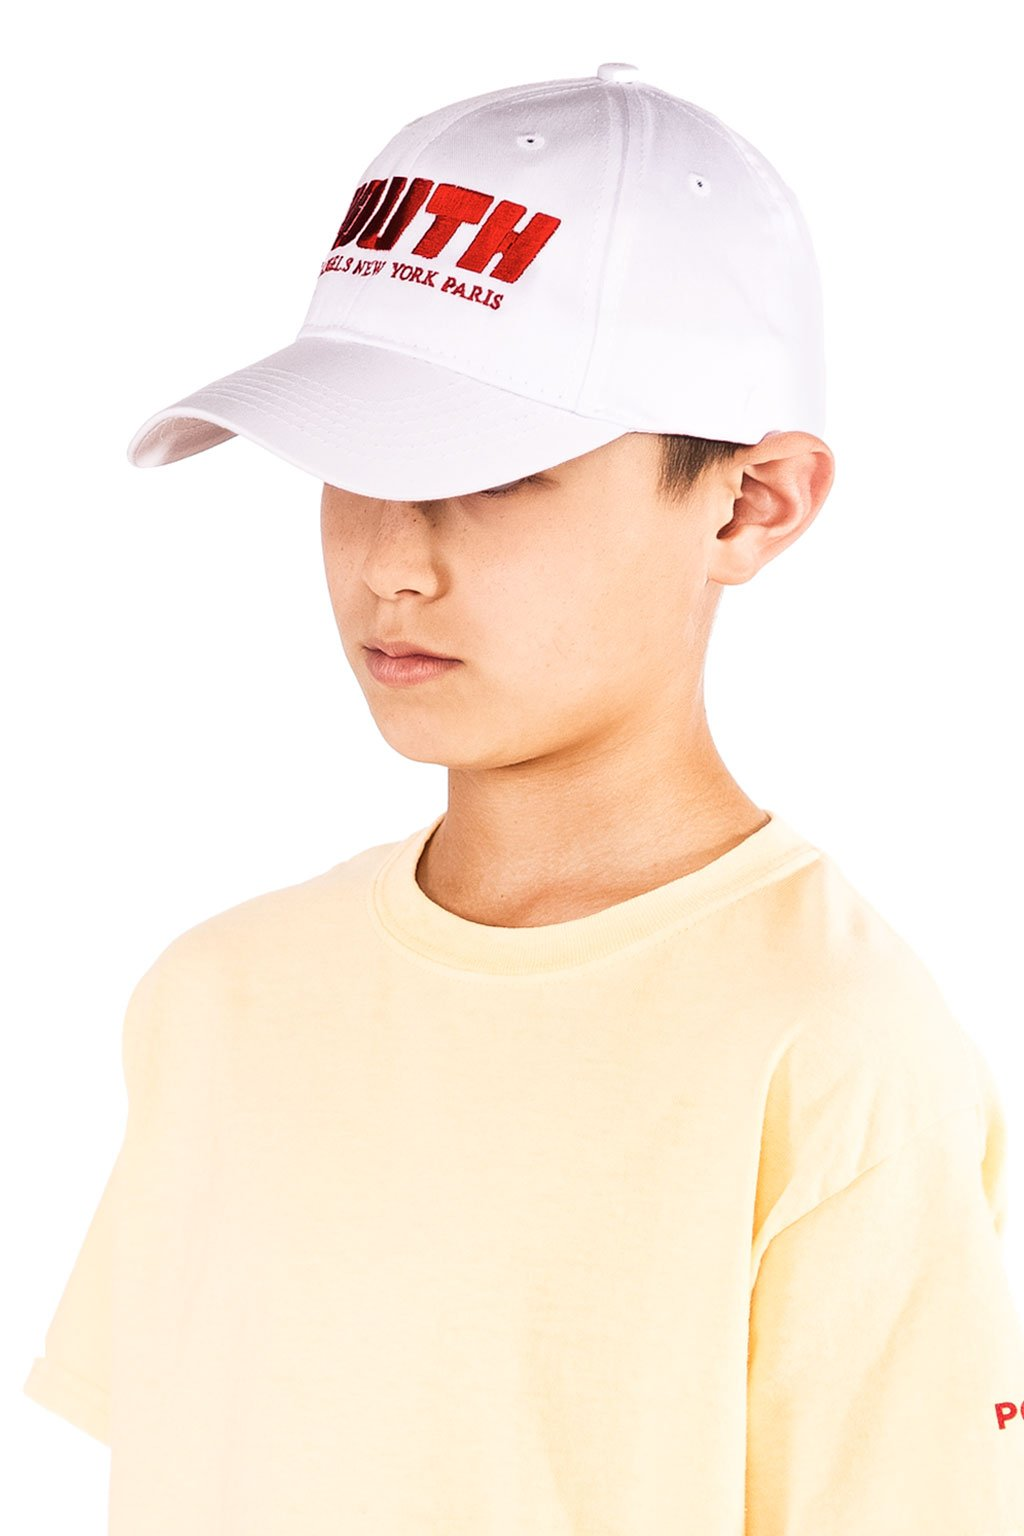 White Youth Cap - Port 213.com